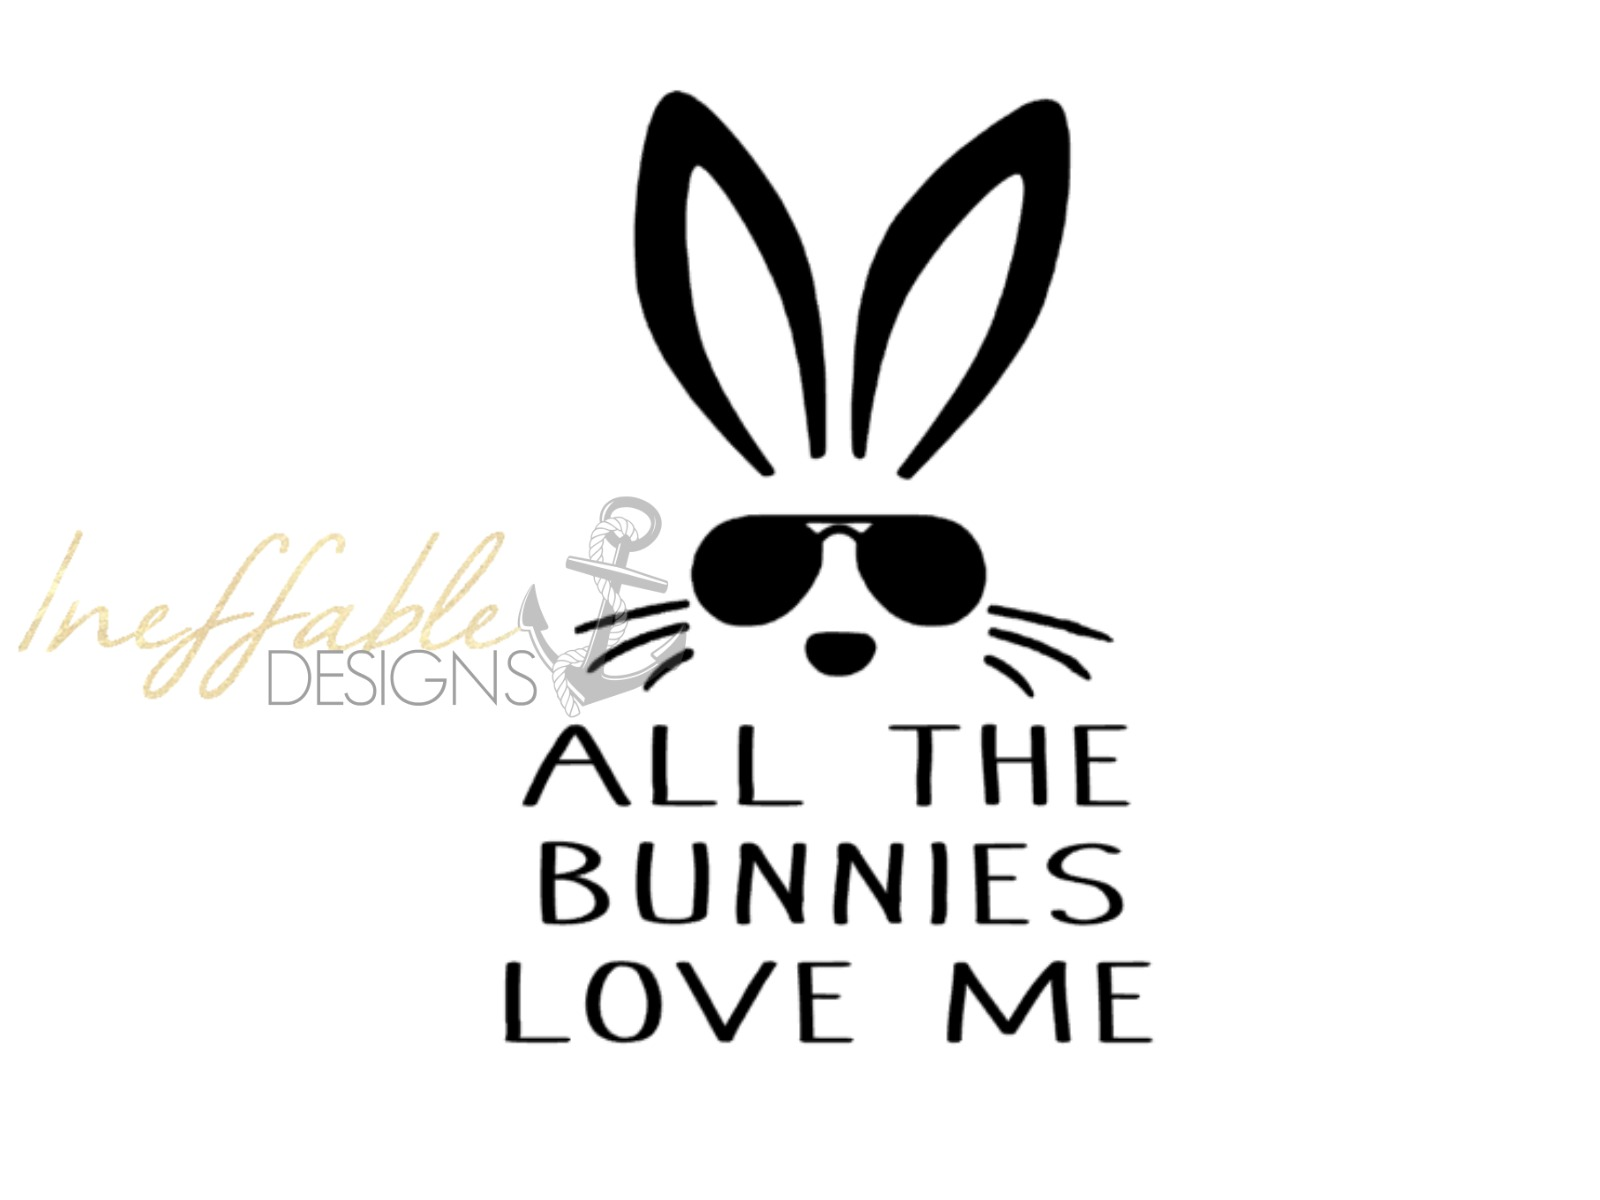 Download All the bunnies love me design file